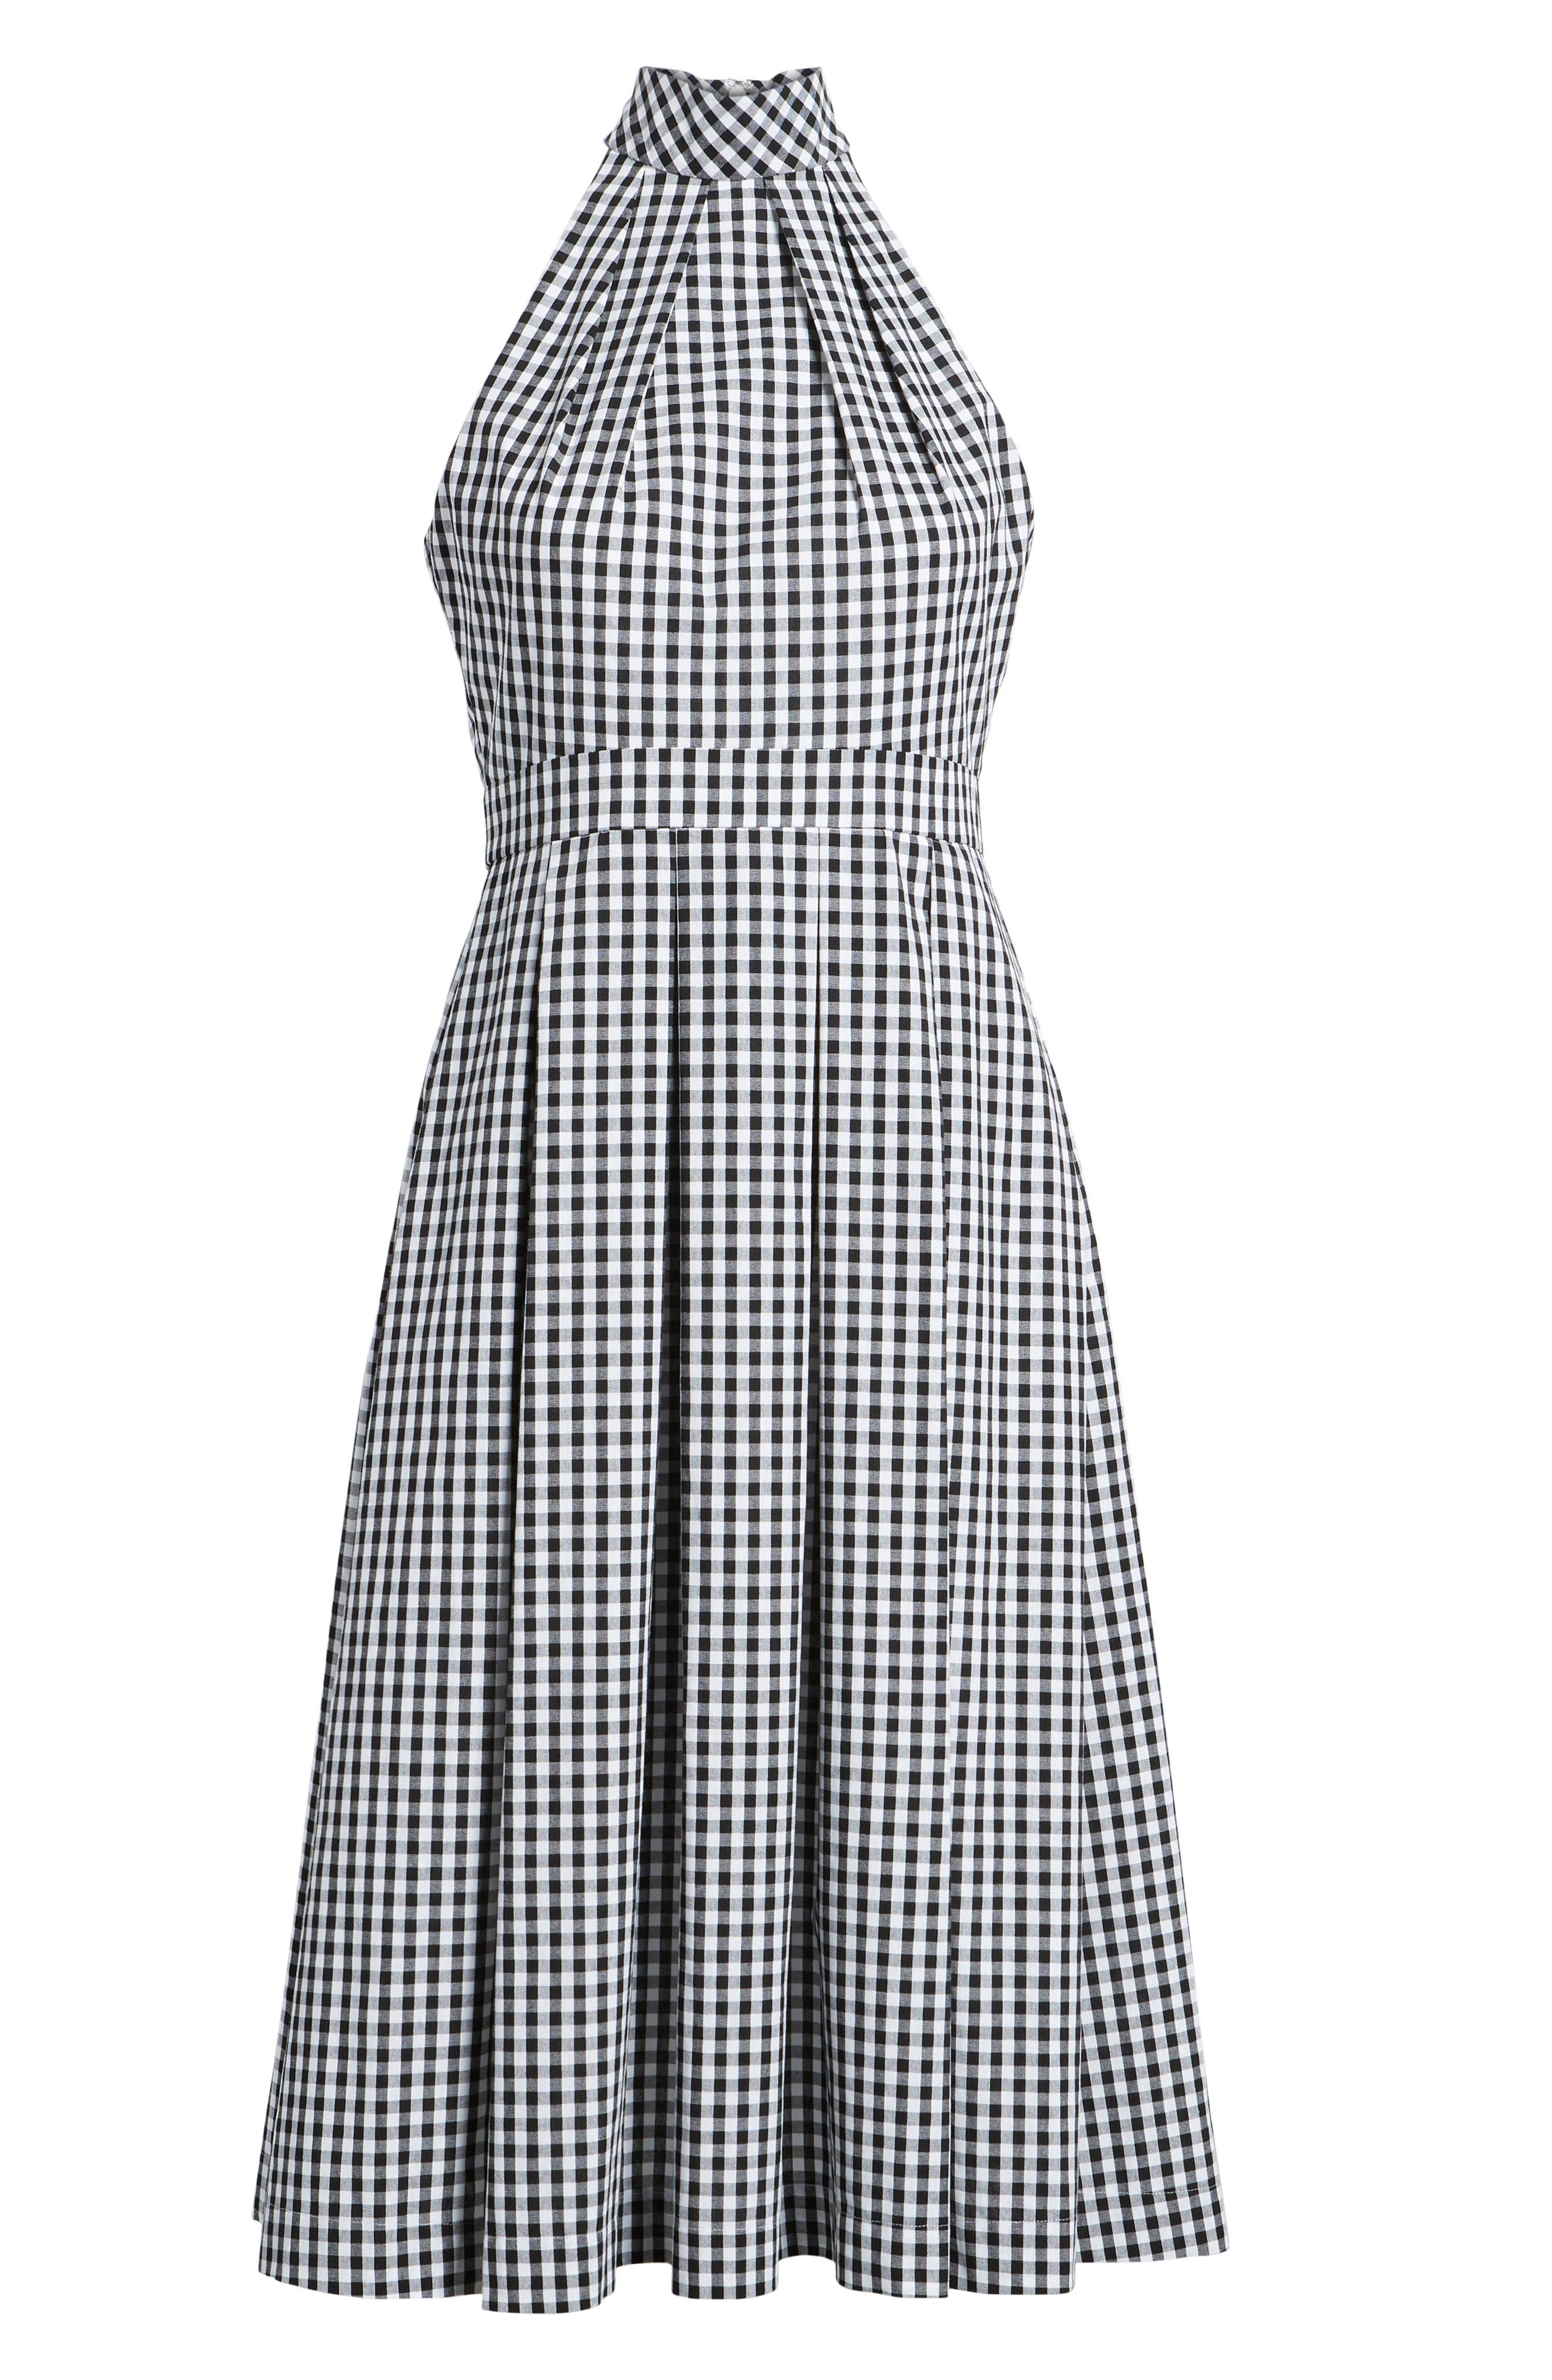 Gingham Halter Dress,                             Alternate thumbnail 7, color,                             Black- White Gingham